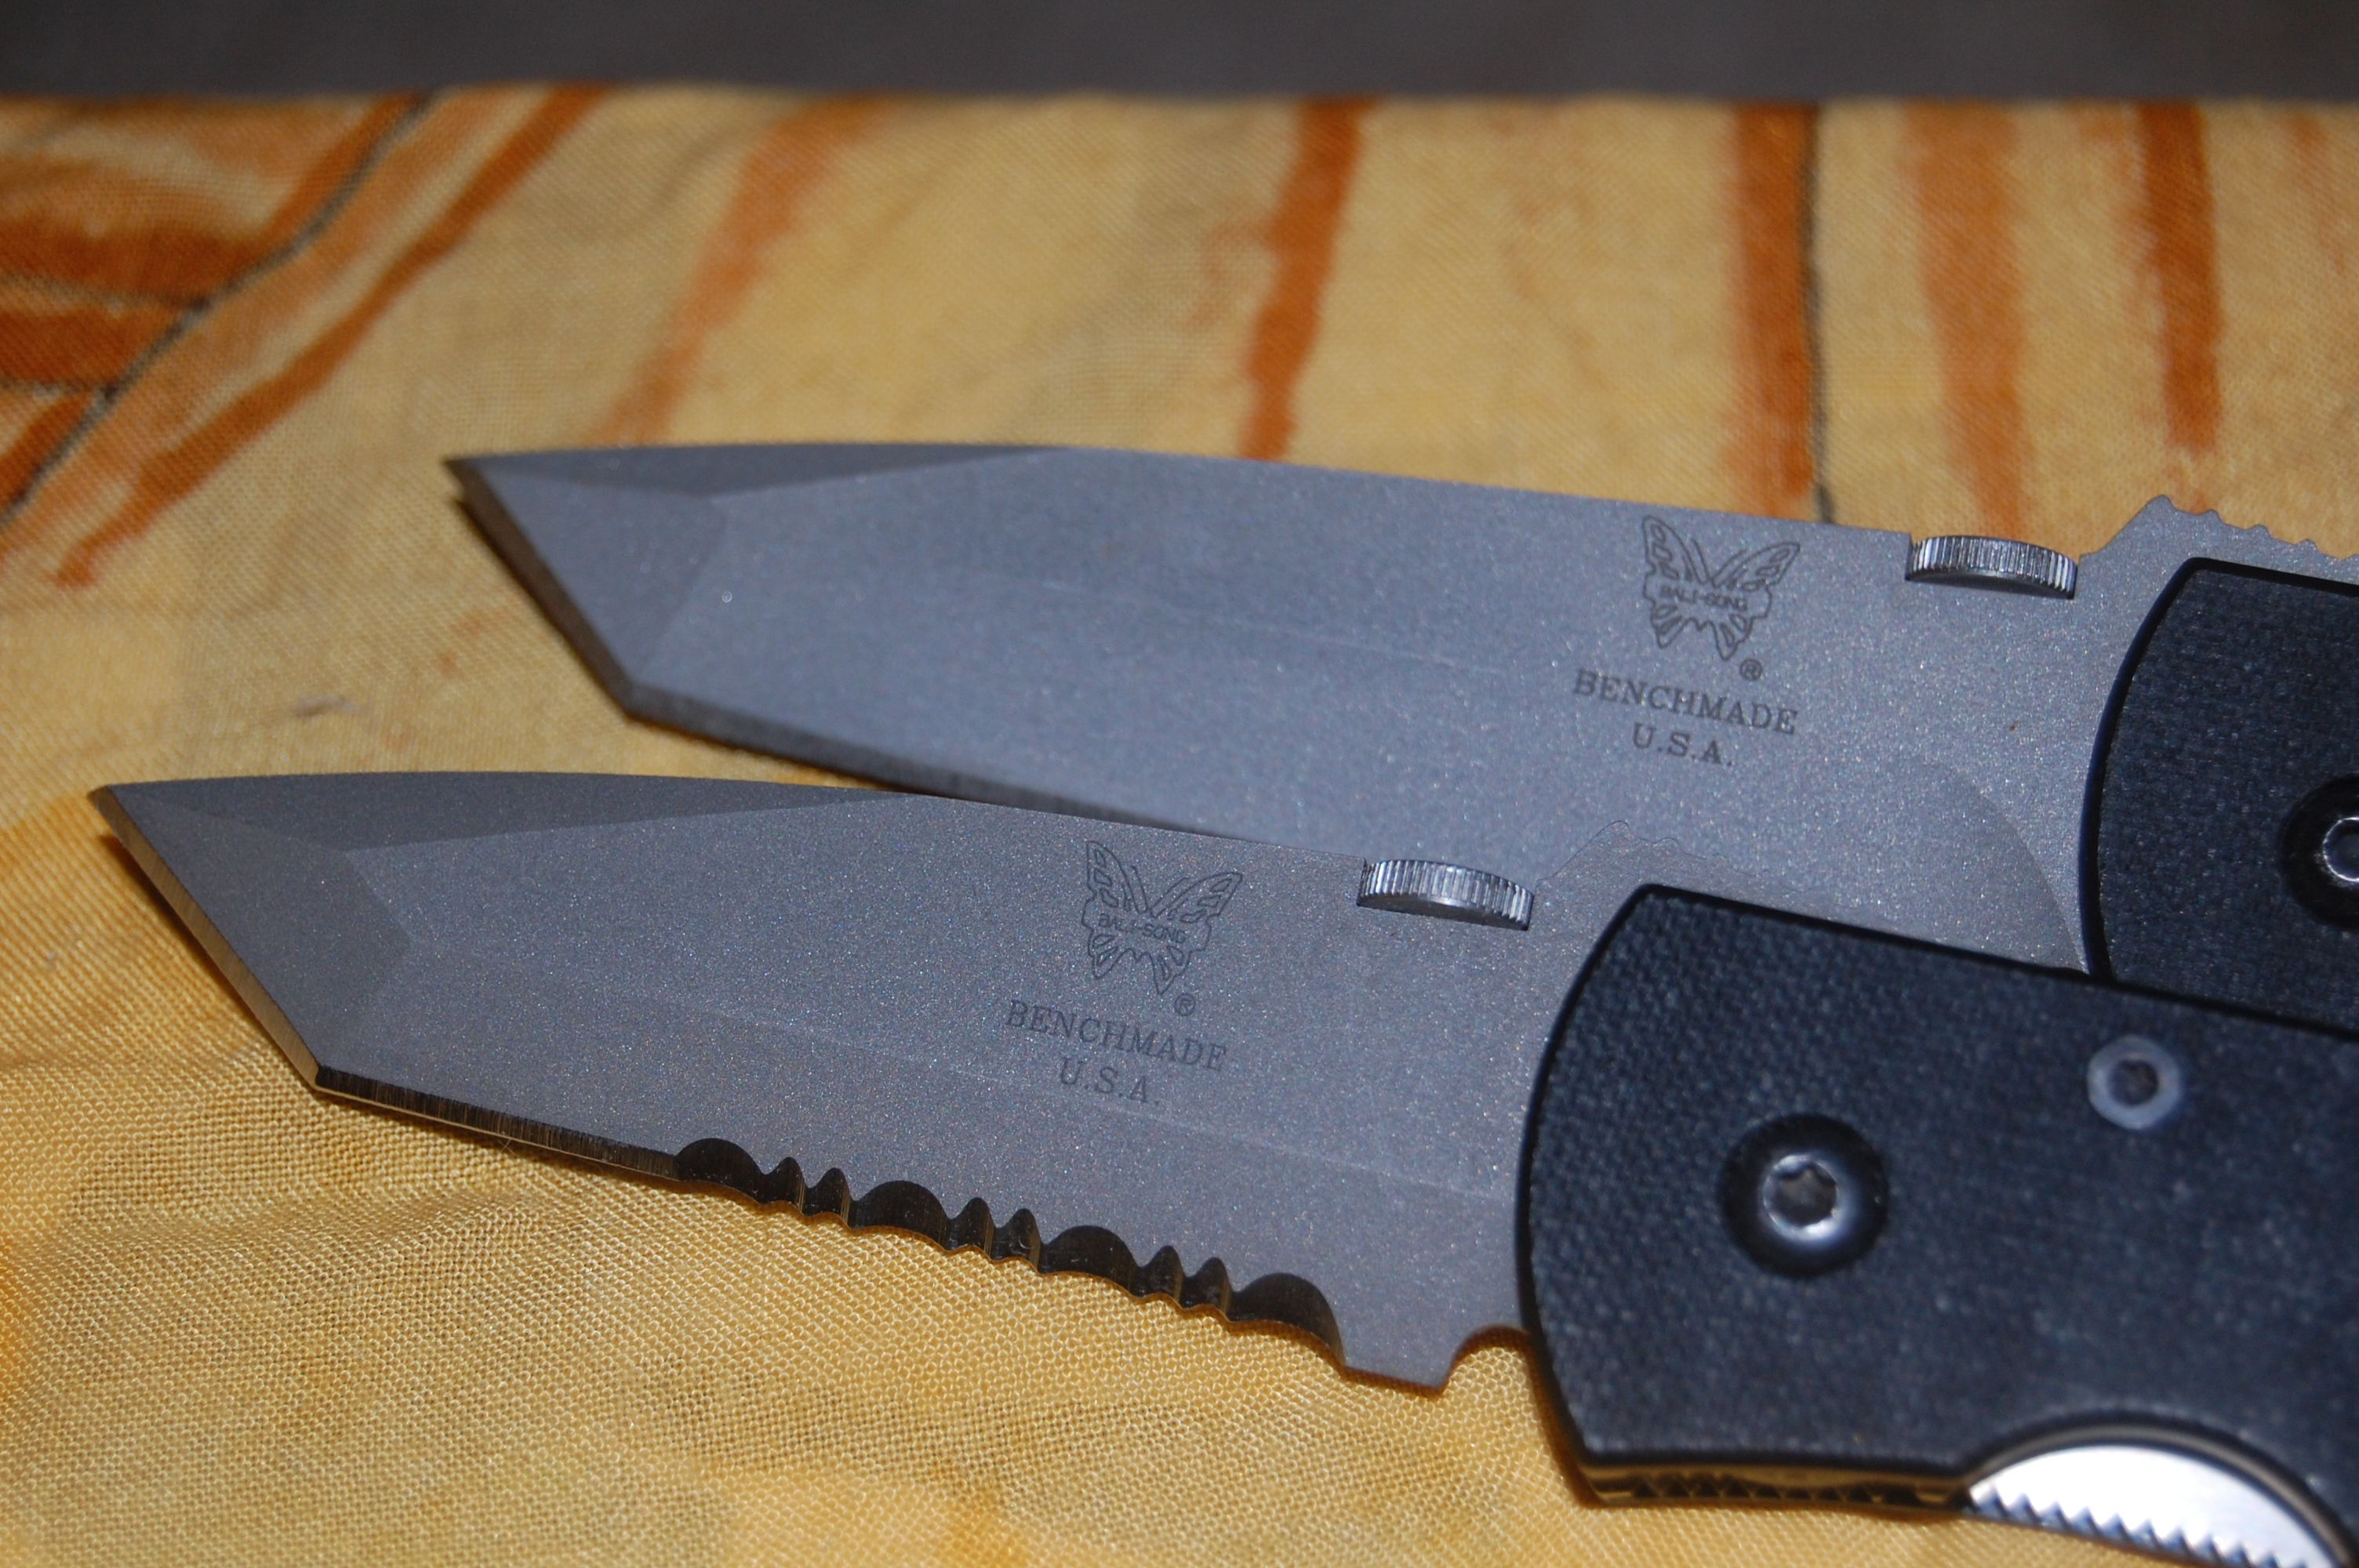 Top ats-34 steel 970 the bottom 970st titanium blade with a carbide cutting surface made for the navy seals the top is a regular production model